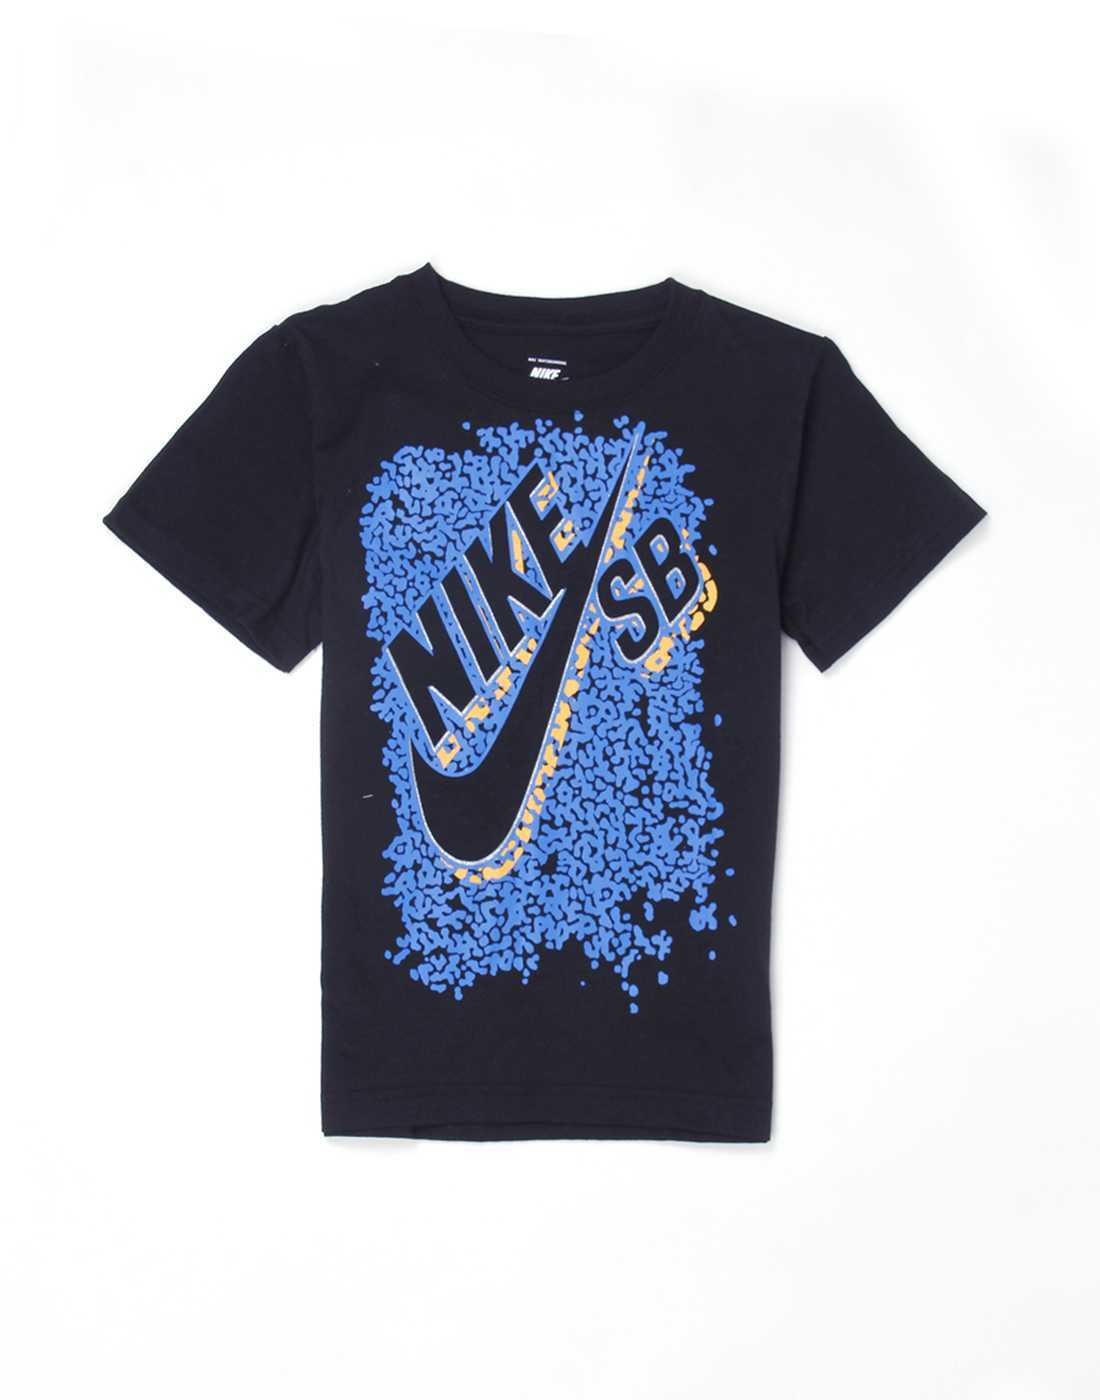 Nike Black Cotton Boys T-Shirt